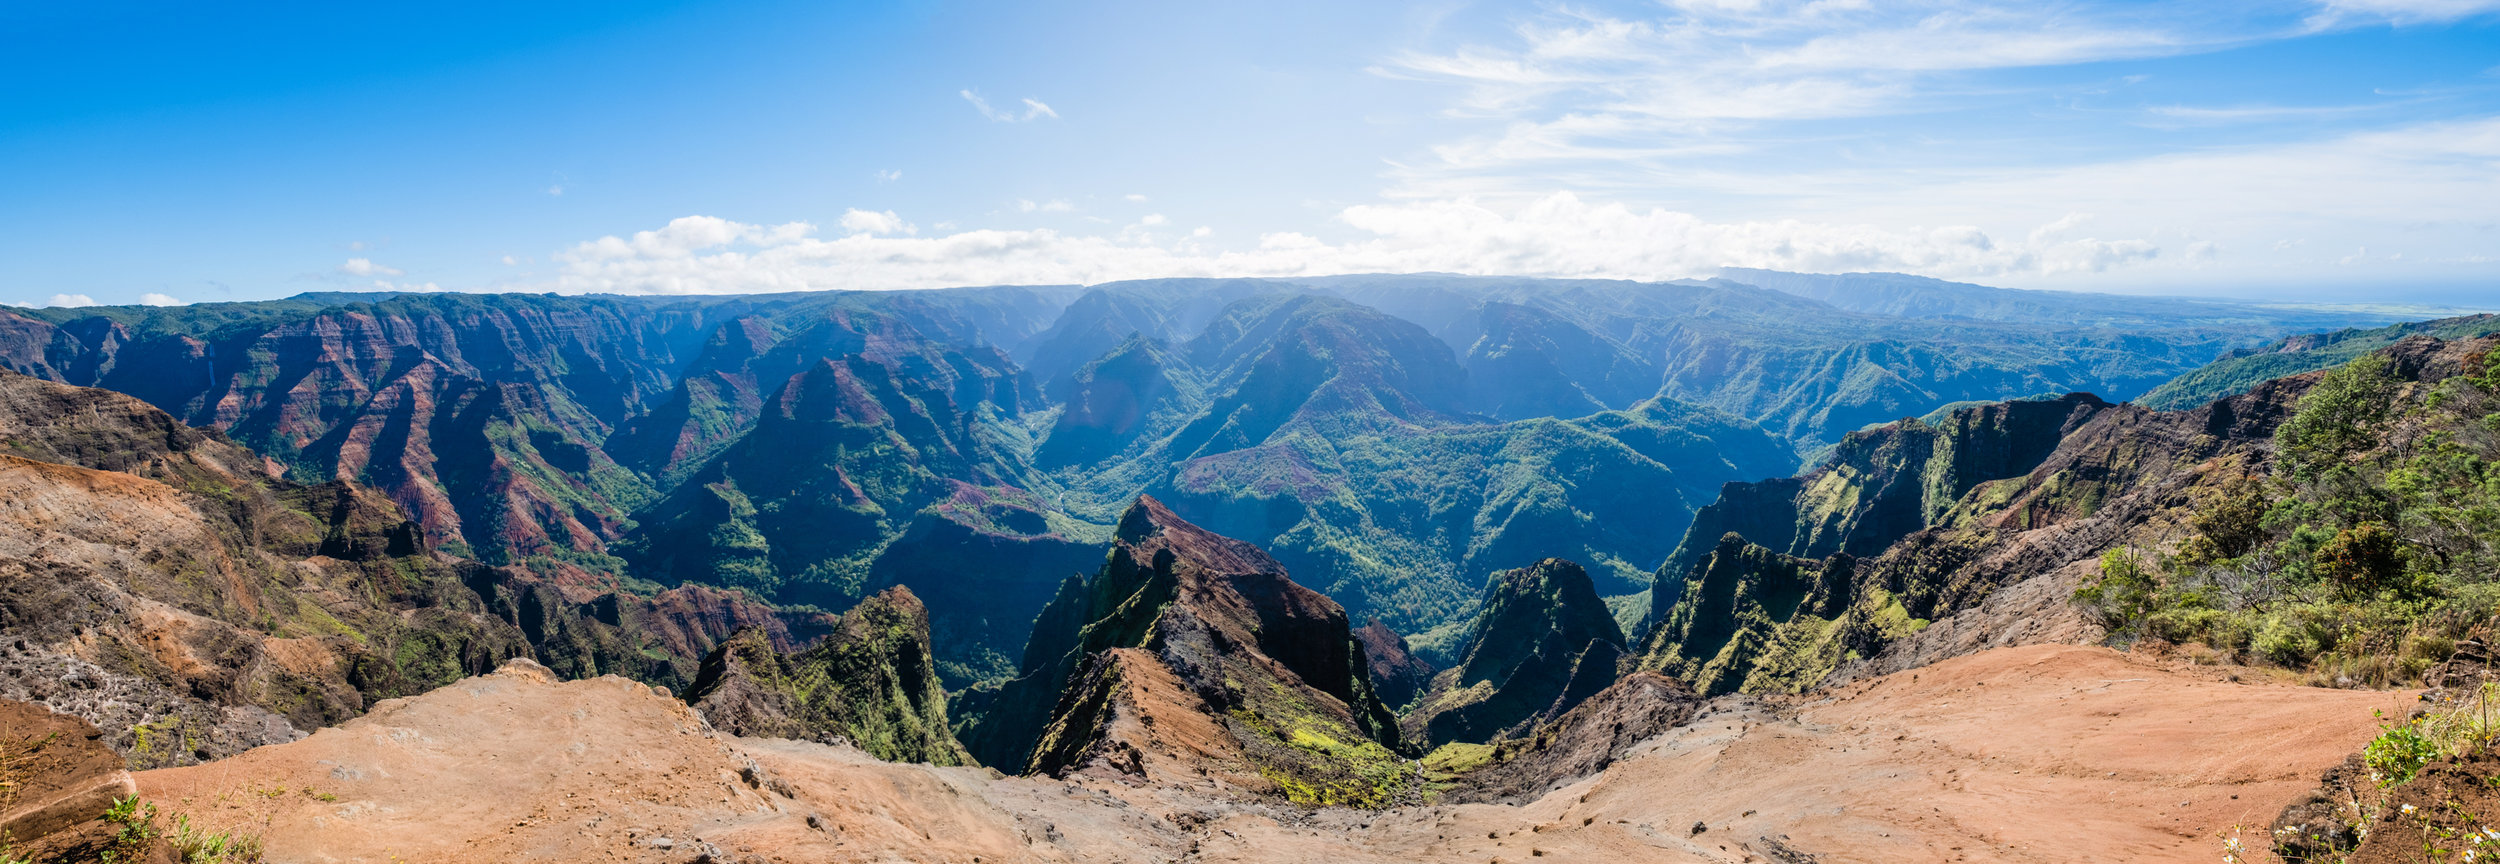 waimea canyon lookout kauai hawaii